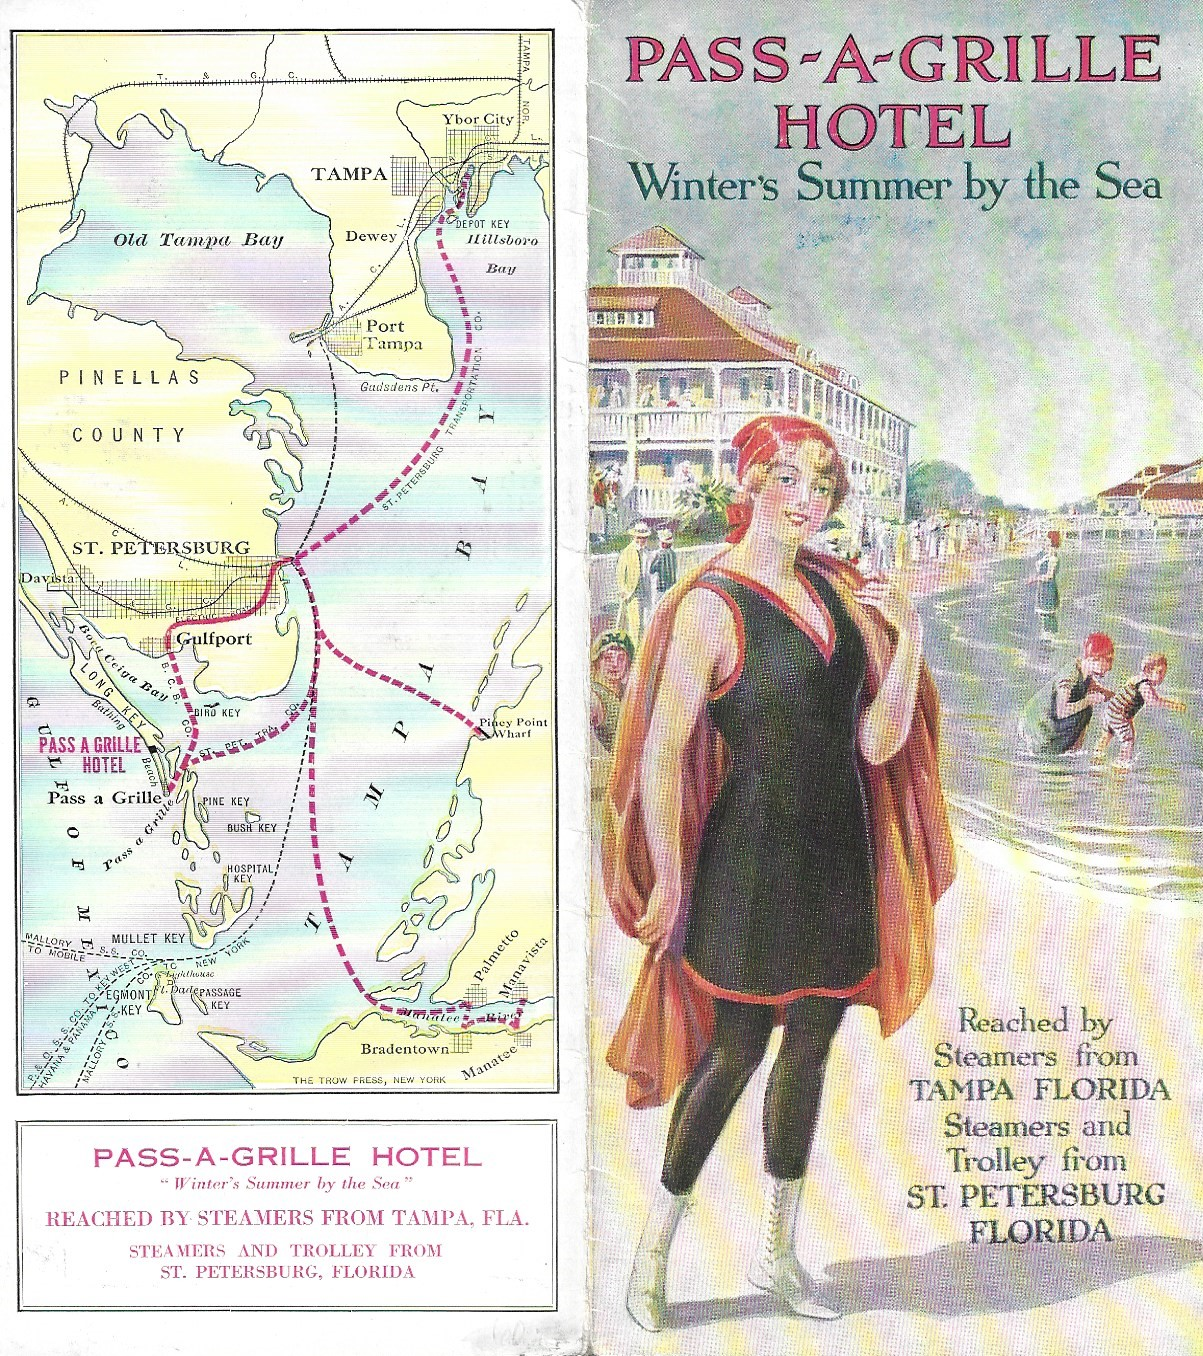 Image for Pass-A-Grille Hotel, Winter's Summer by the Sea, Tourism Brochure, 1920's